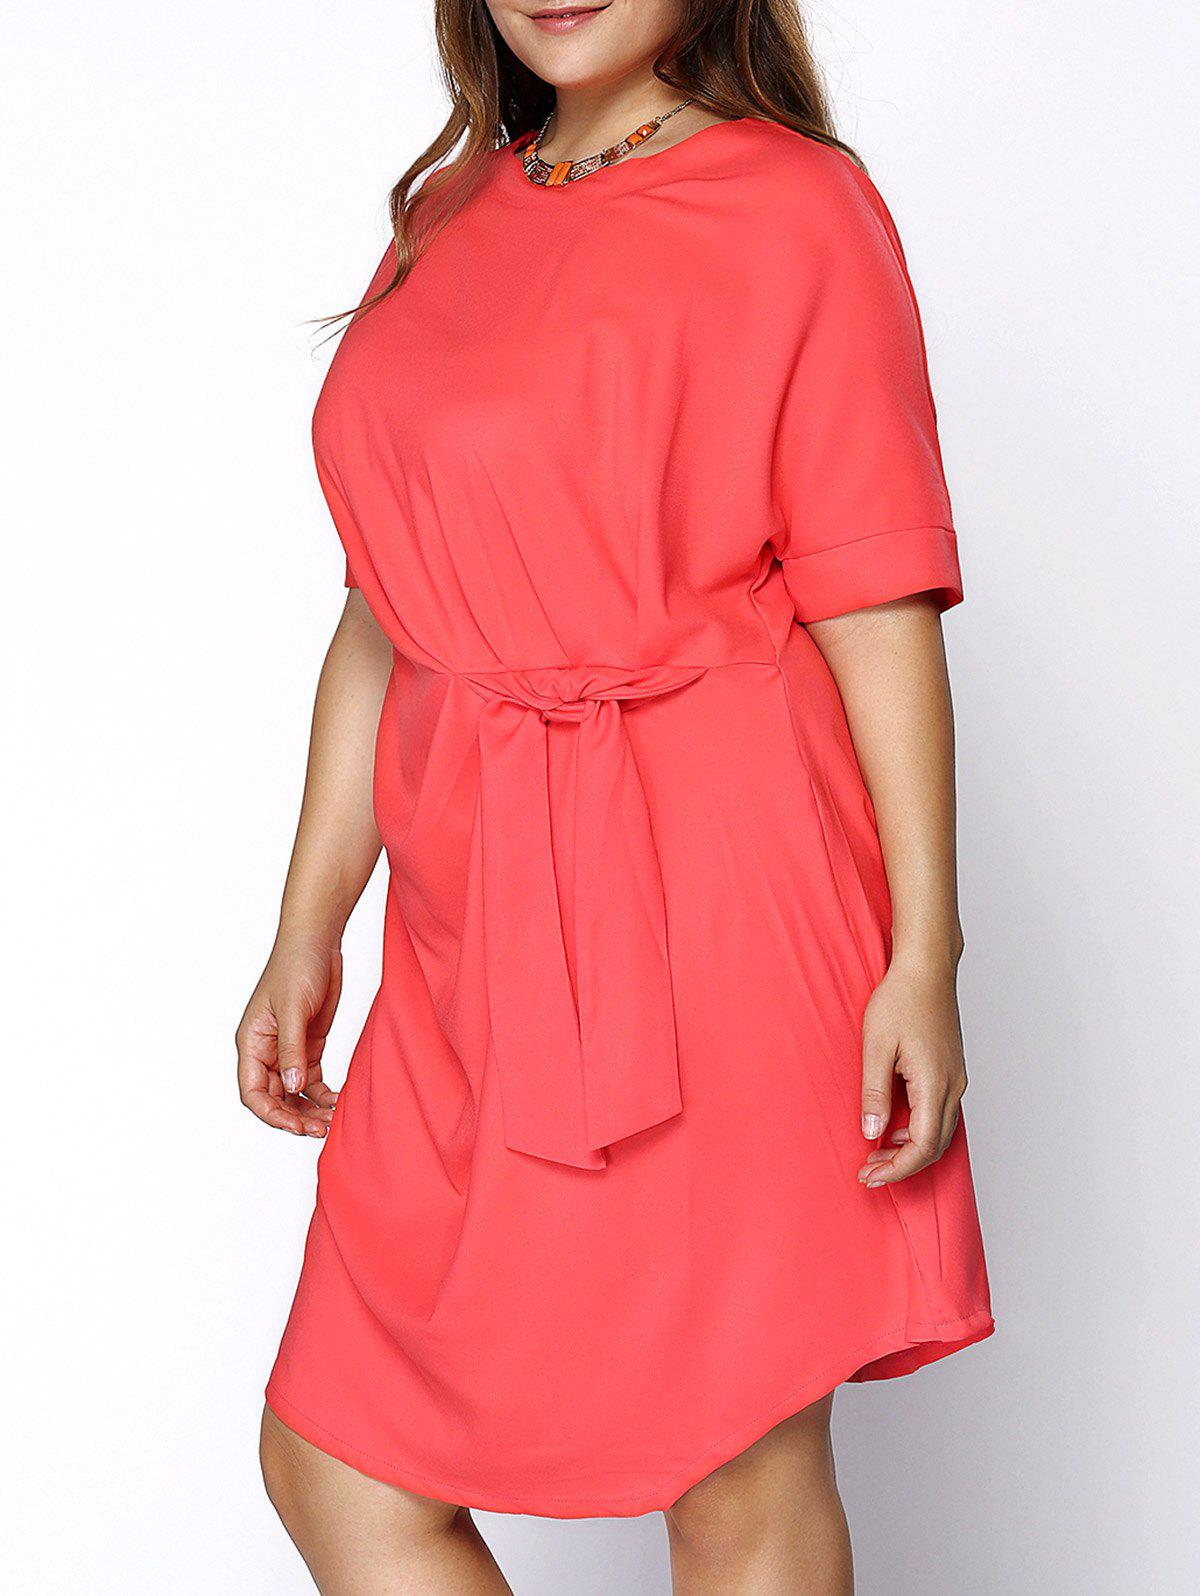 Chic Round Collar Knotted Solid Color Plus Size Women's Dress